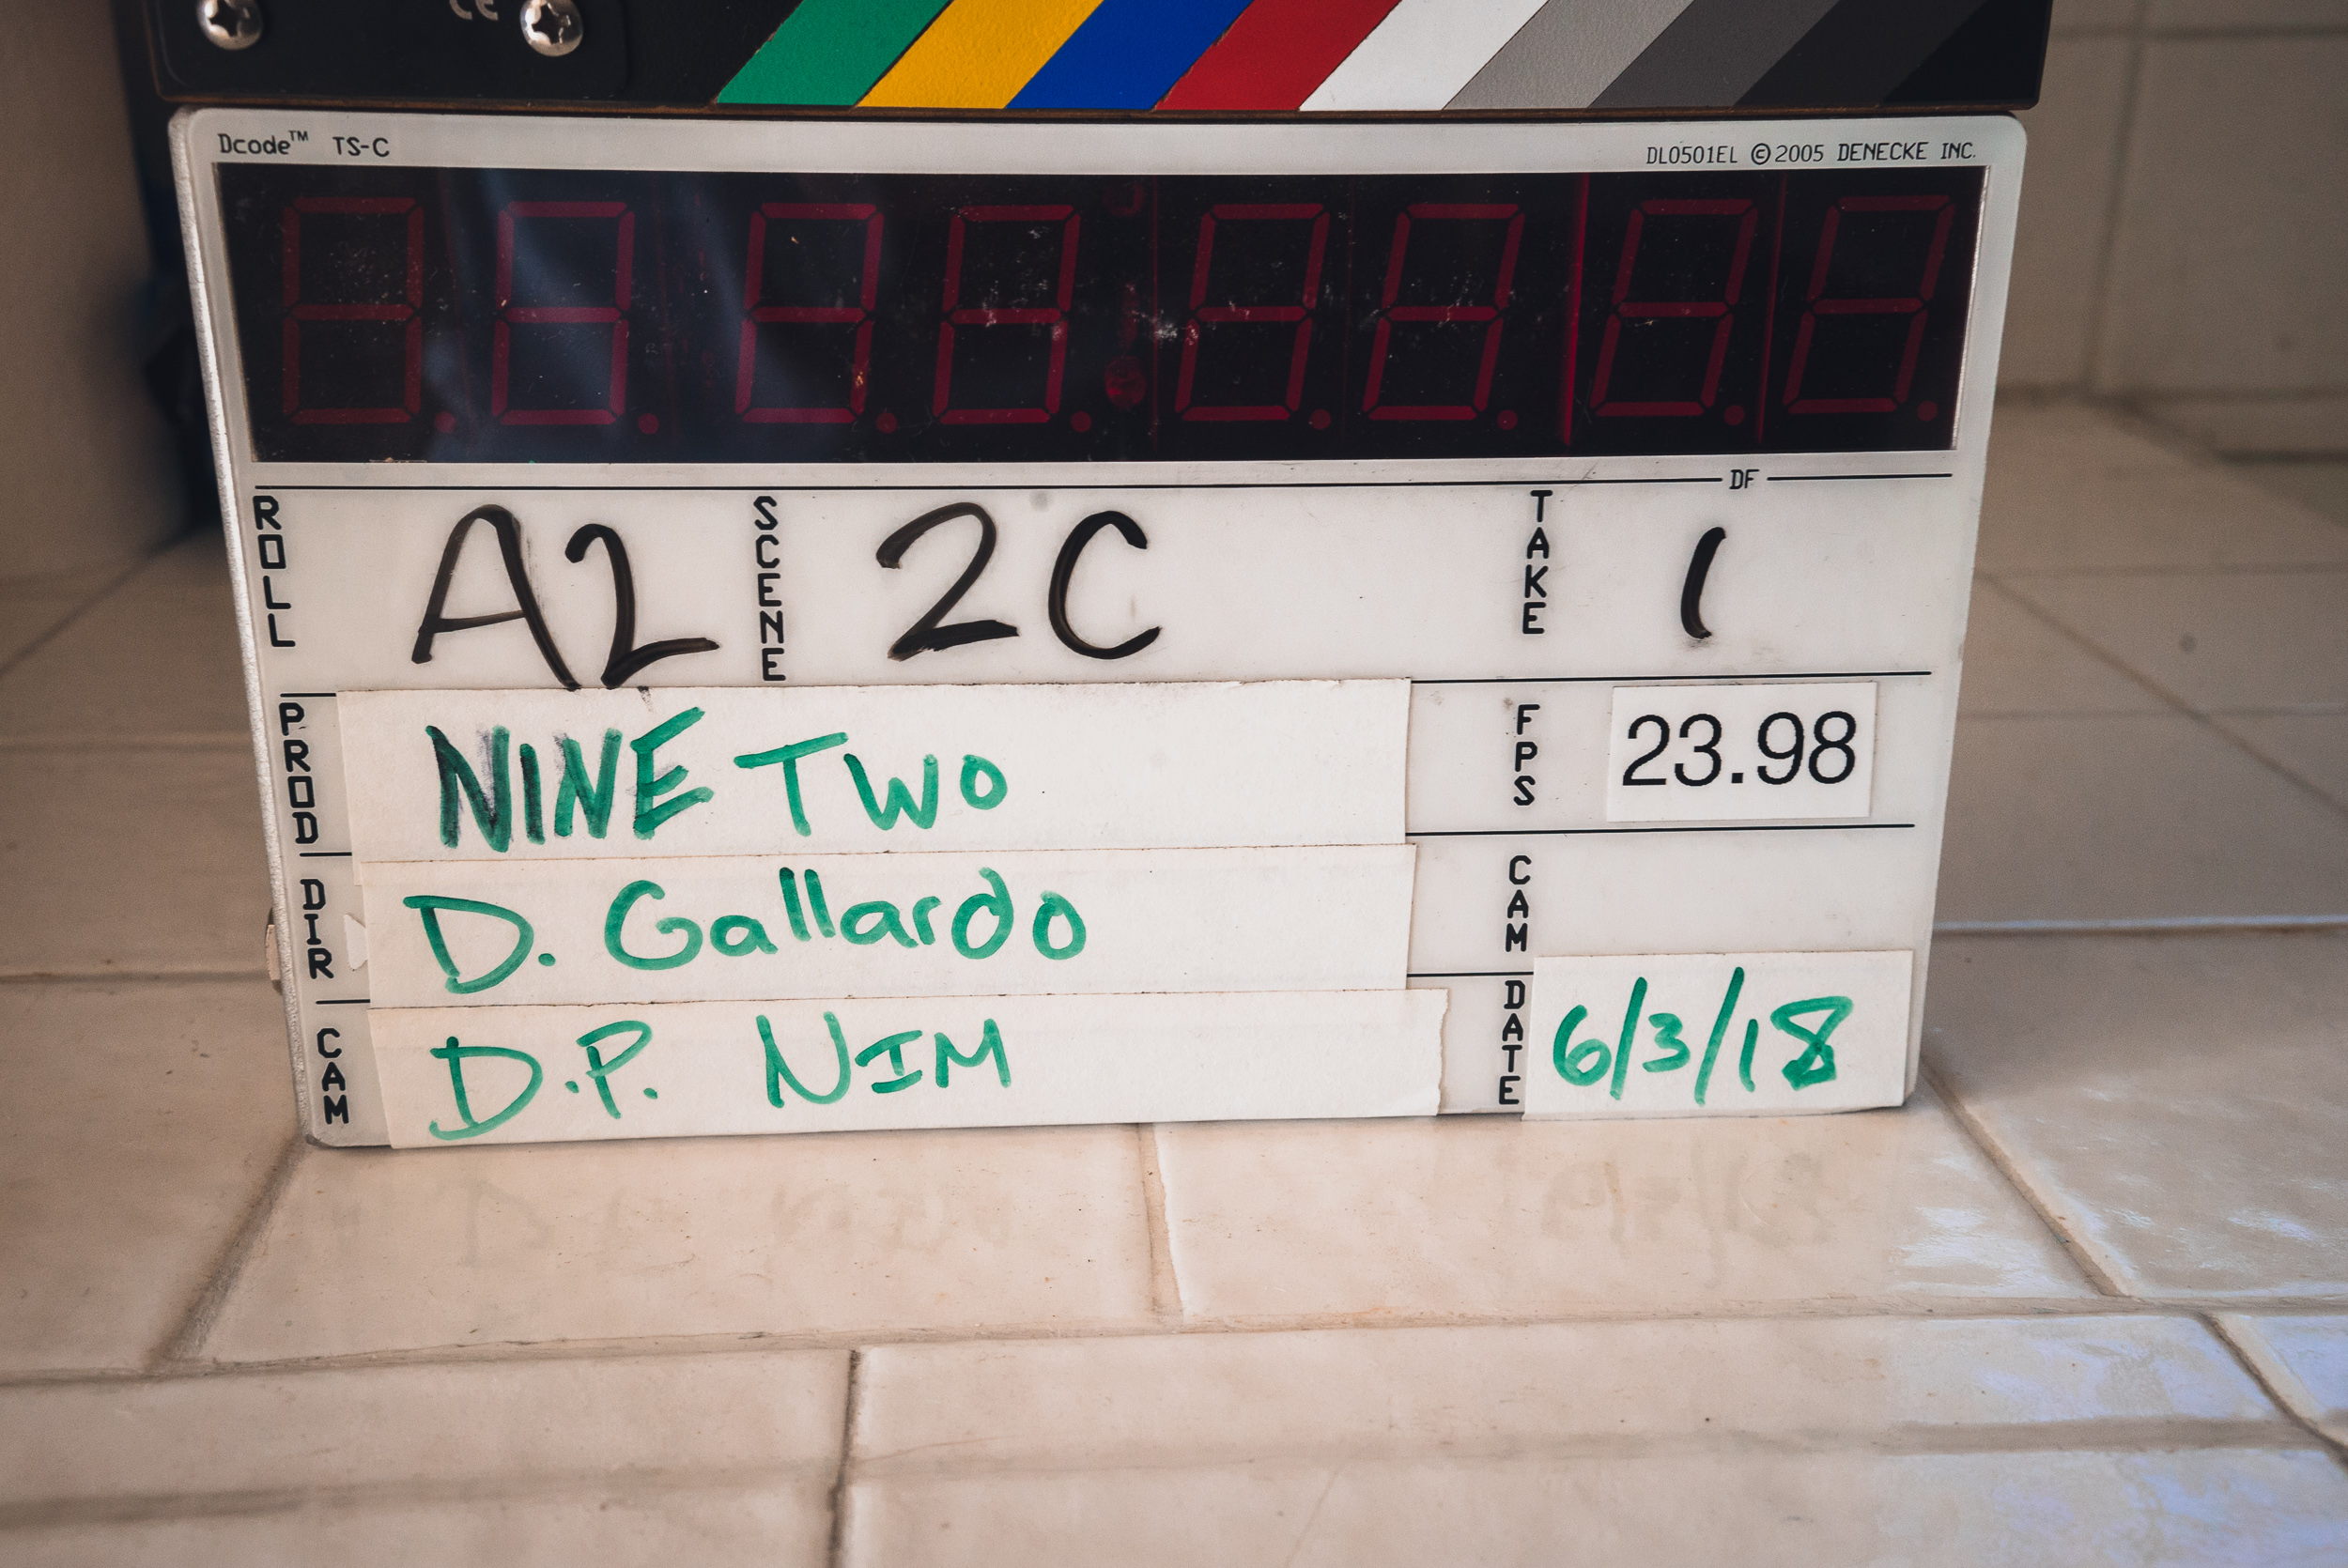 NINE TWO_PROD STILL_20160602_019.jpg